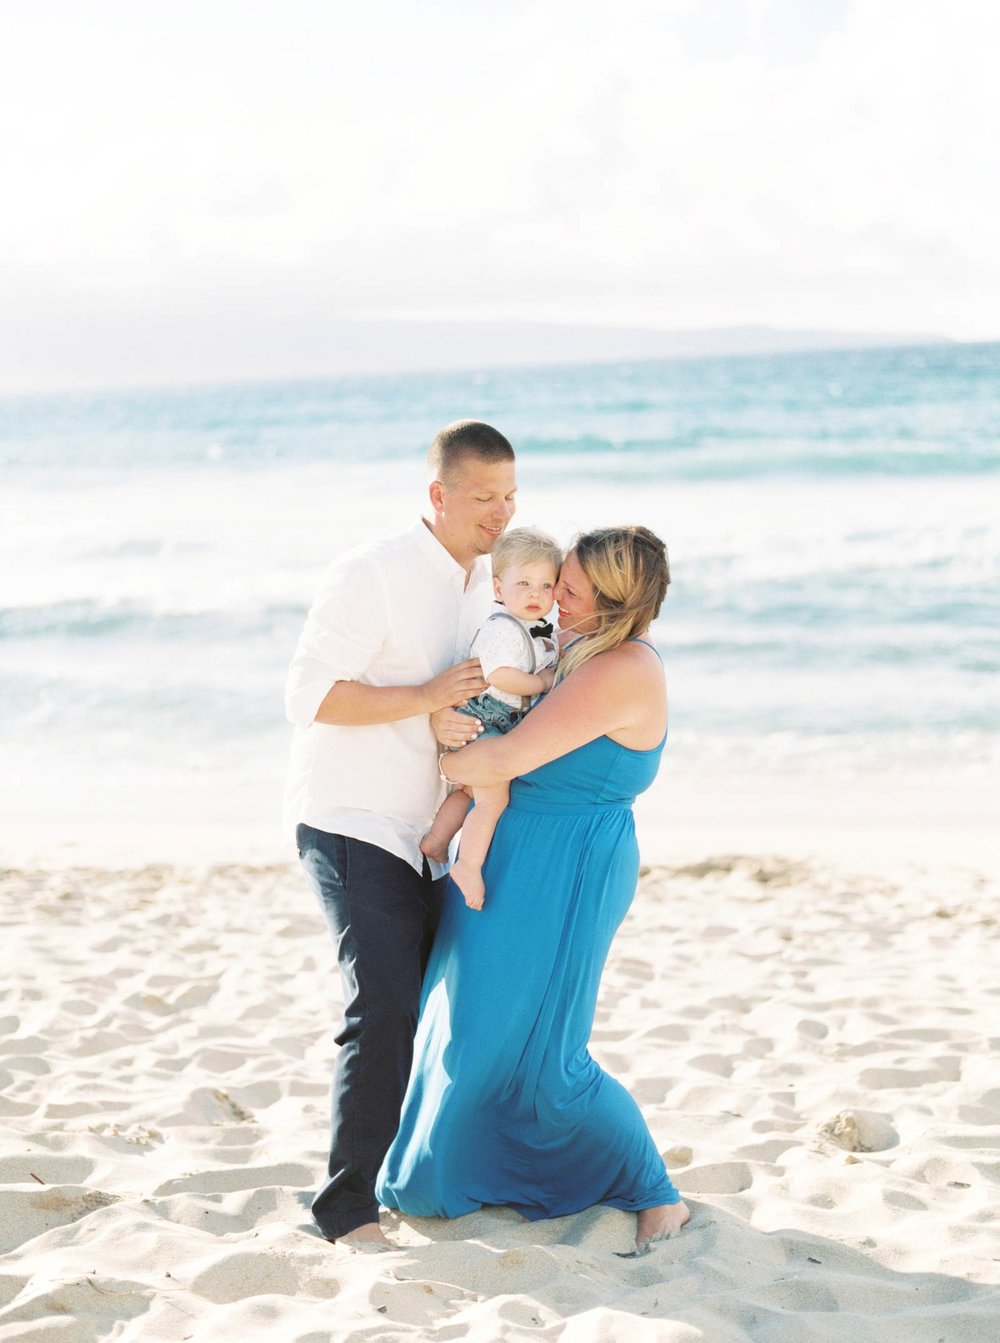 Maui-vow-renewal-family-photos-012.jpg